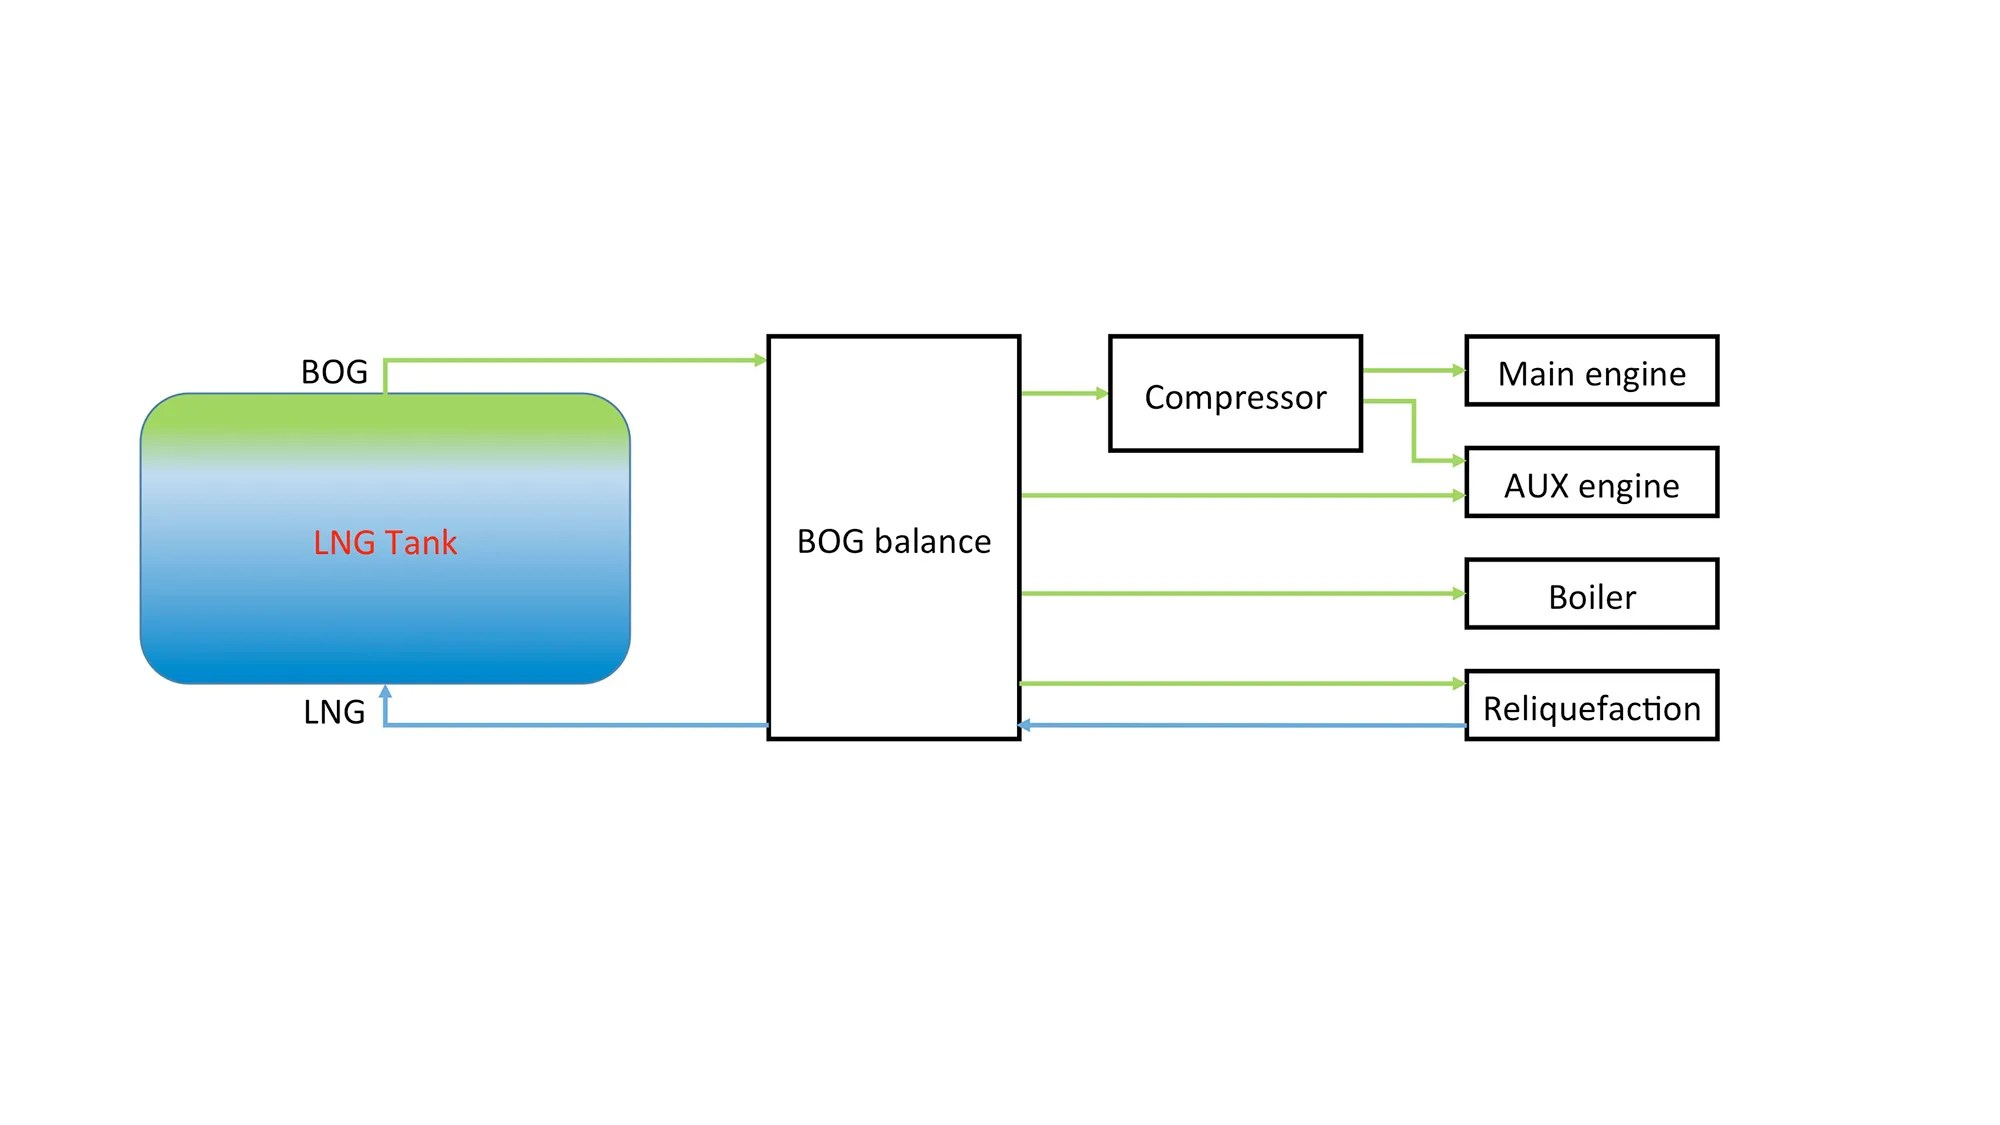 medium resolution of 2016 1 boil off gas handling onboard lng fuelled ships 2 fig 1 simplified system layout